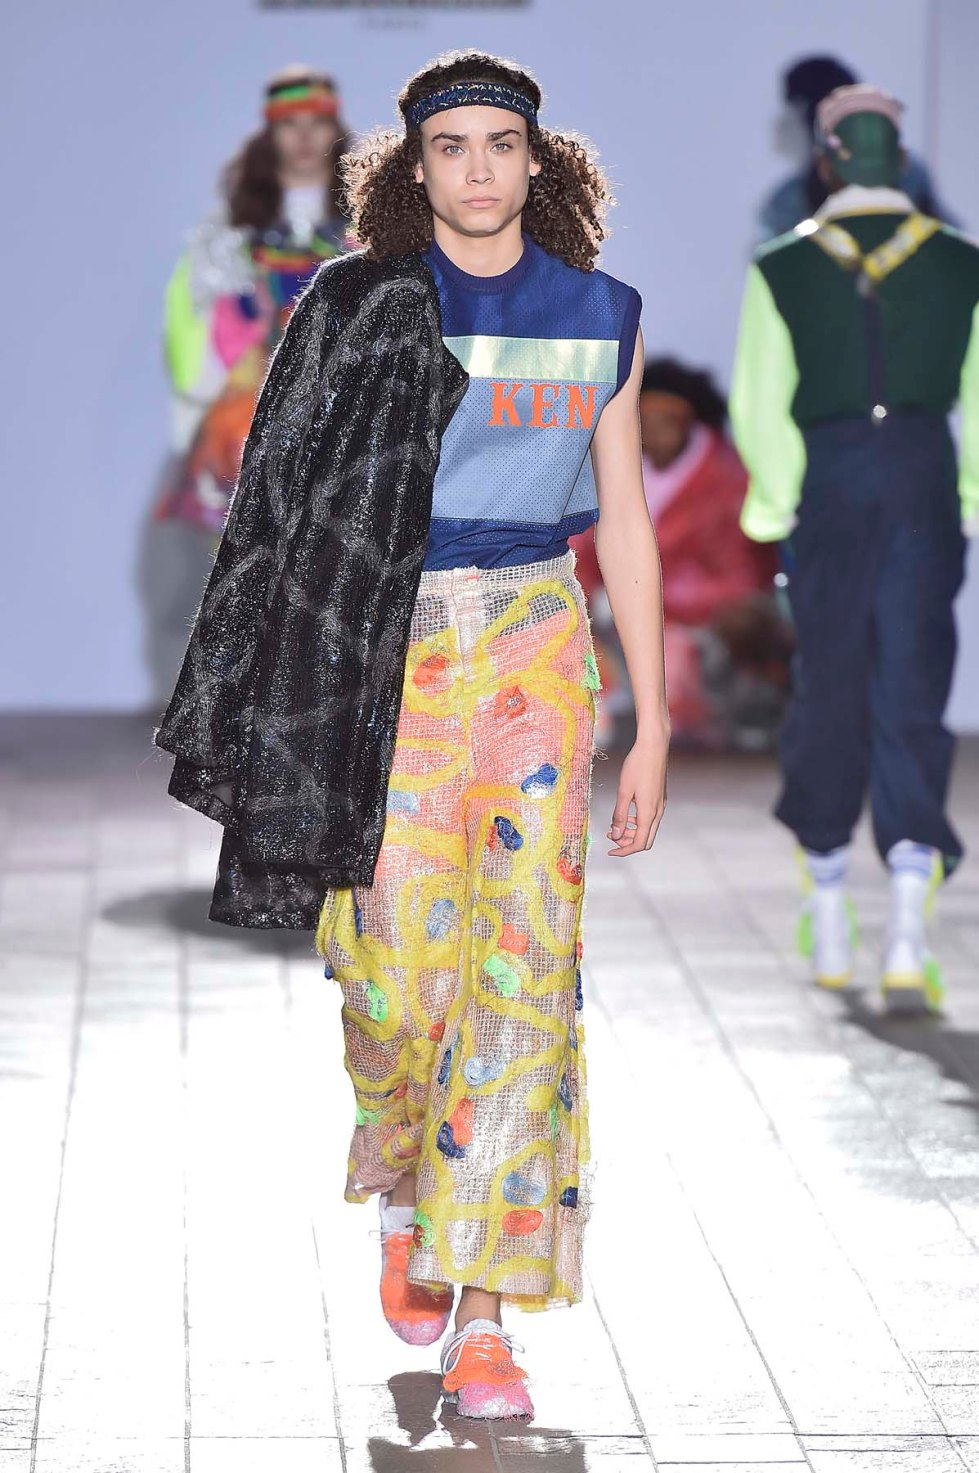 Derek-Cheng-central-saint-martins-ba-fashion-2016-slashitmag-show